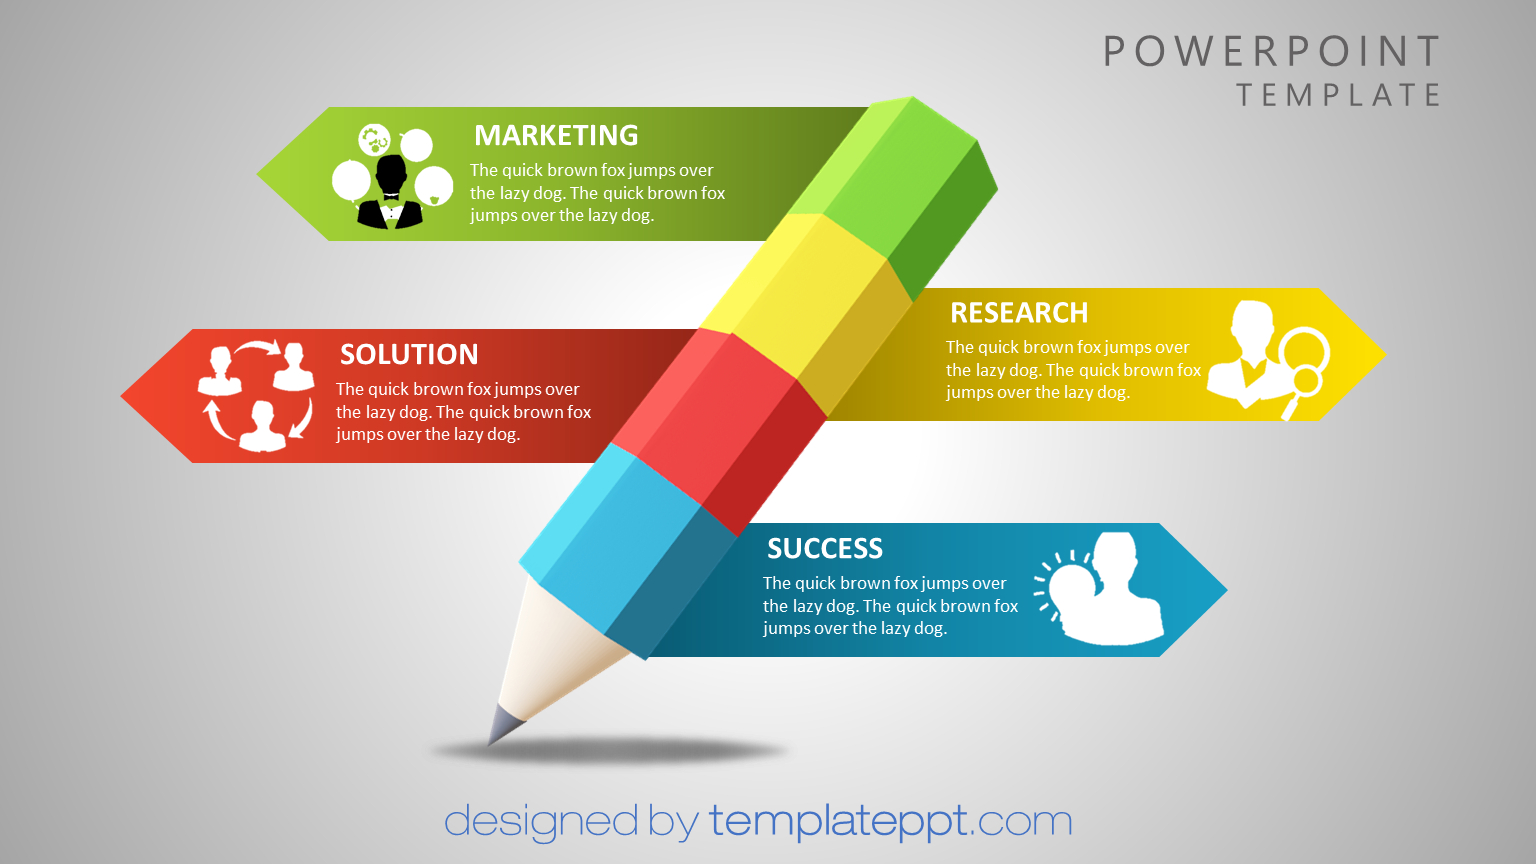 3D Animated Powerpoint Templates Free Download Using Paint Throughout Powerpoint Animated Templates Free Download 2010